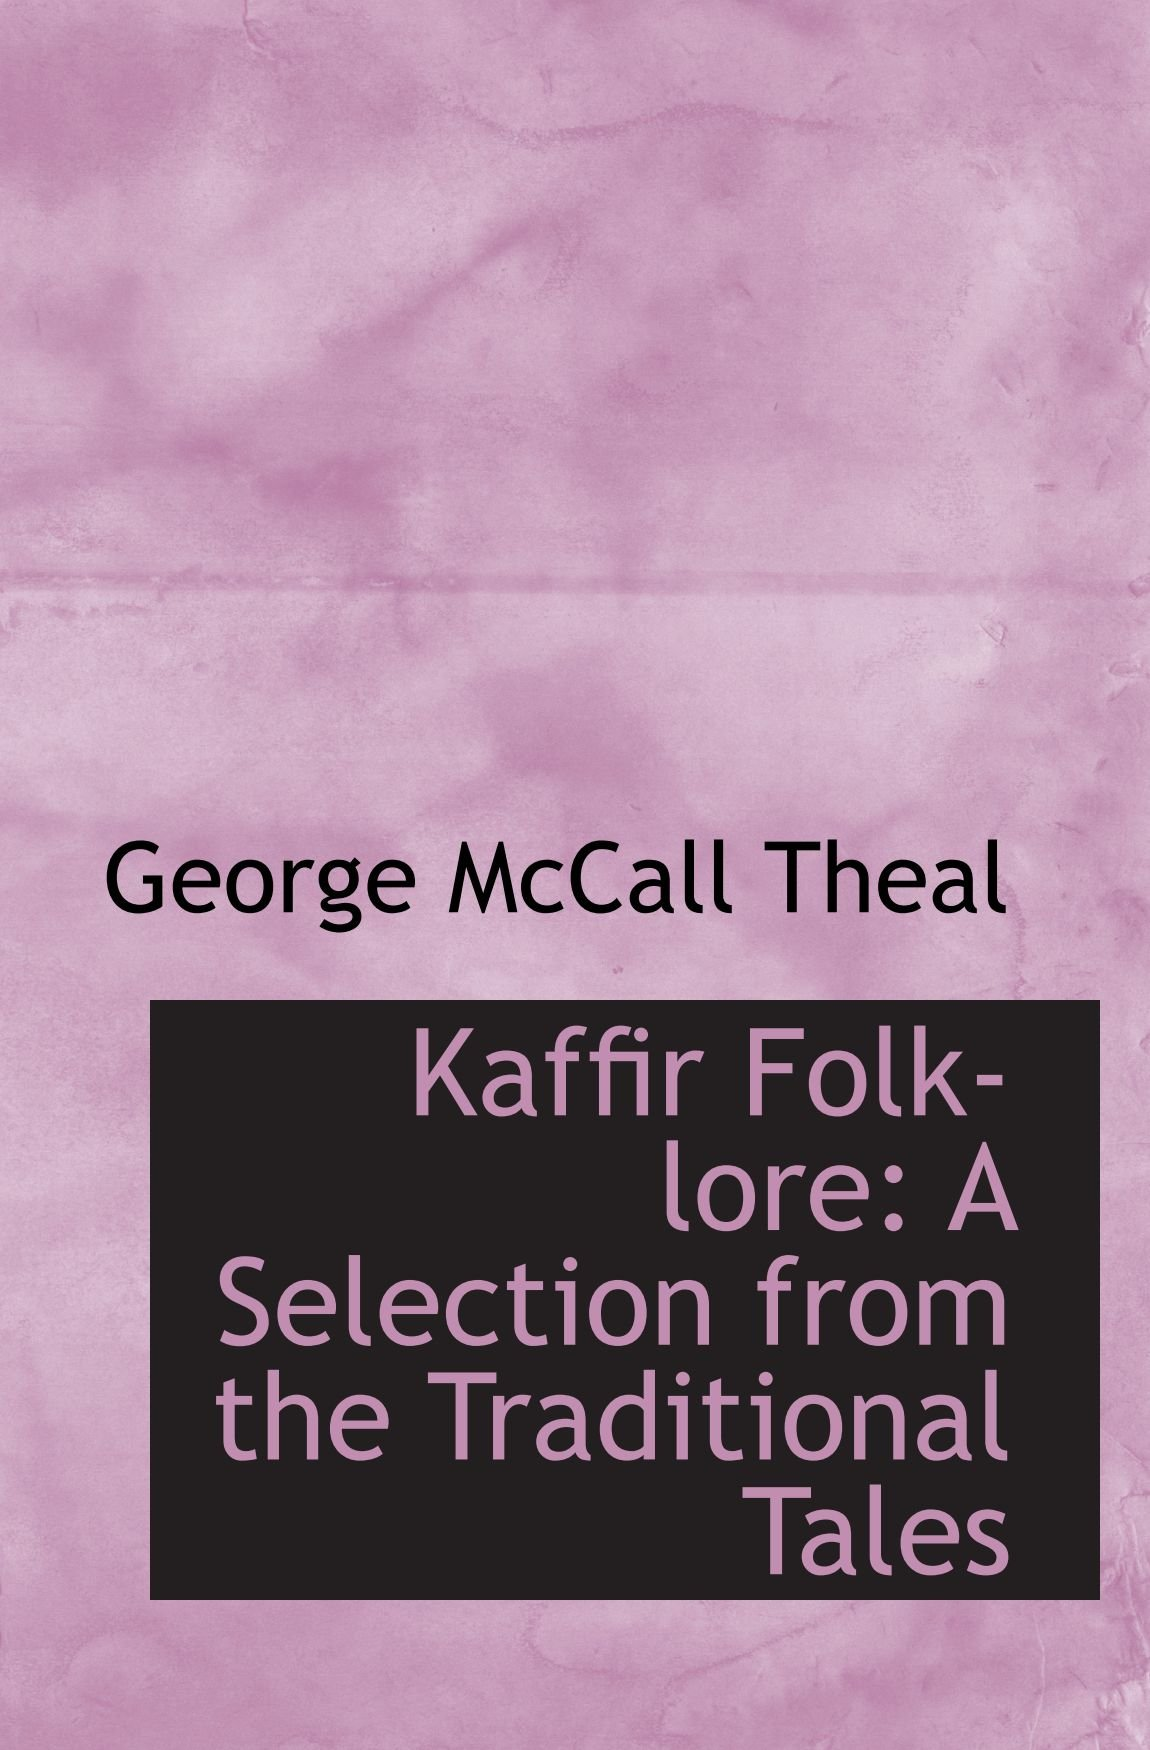 Download Kaffir Folk-lore: A Selection from the Traditional Tales PDF